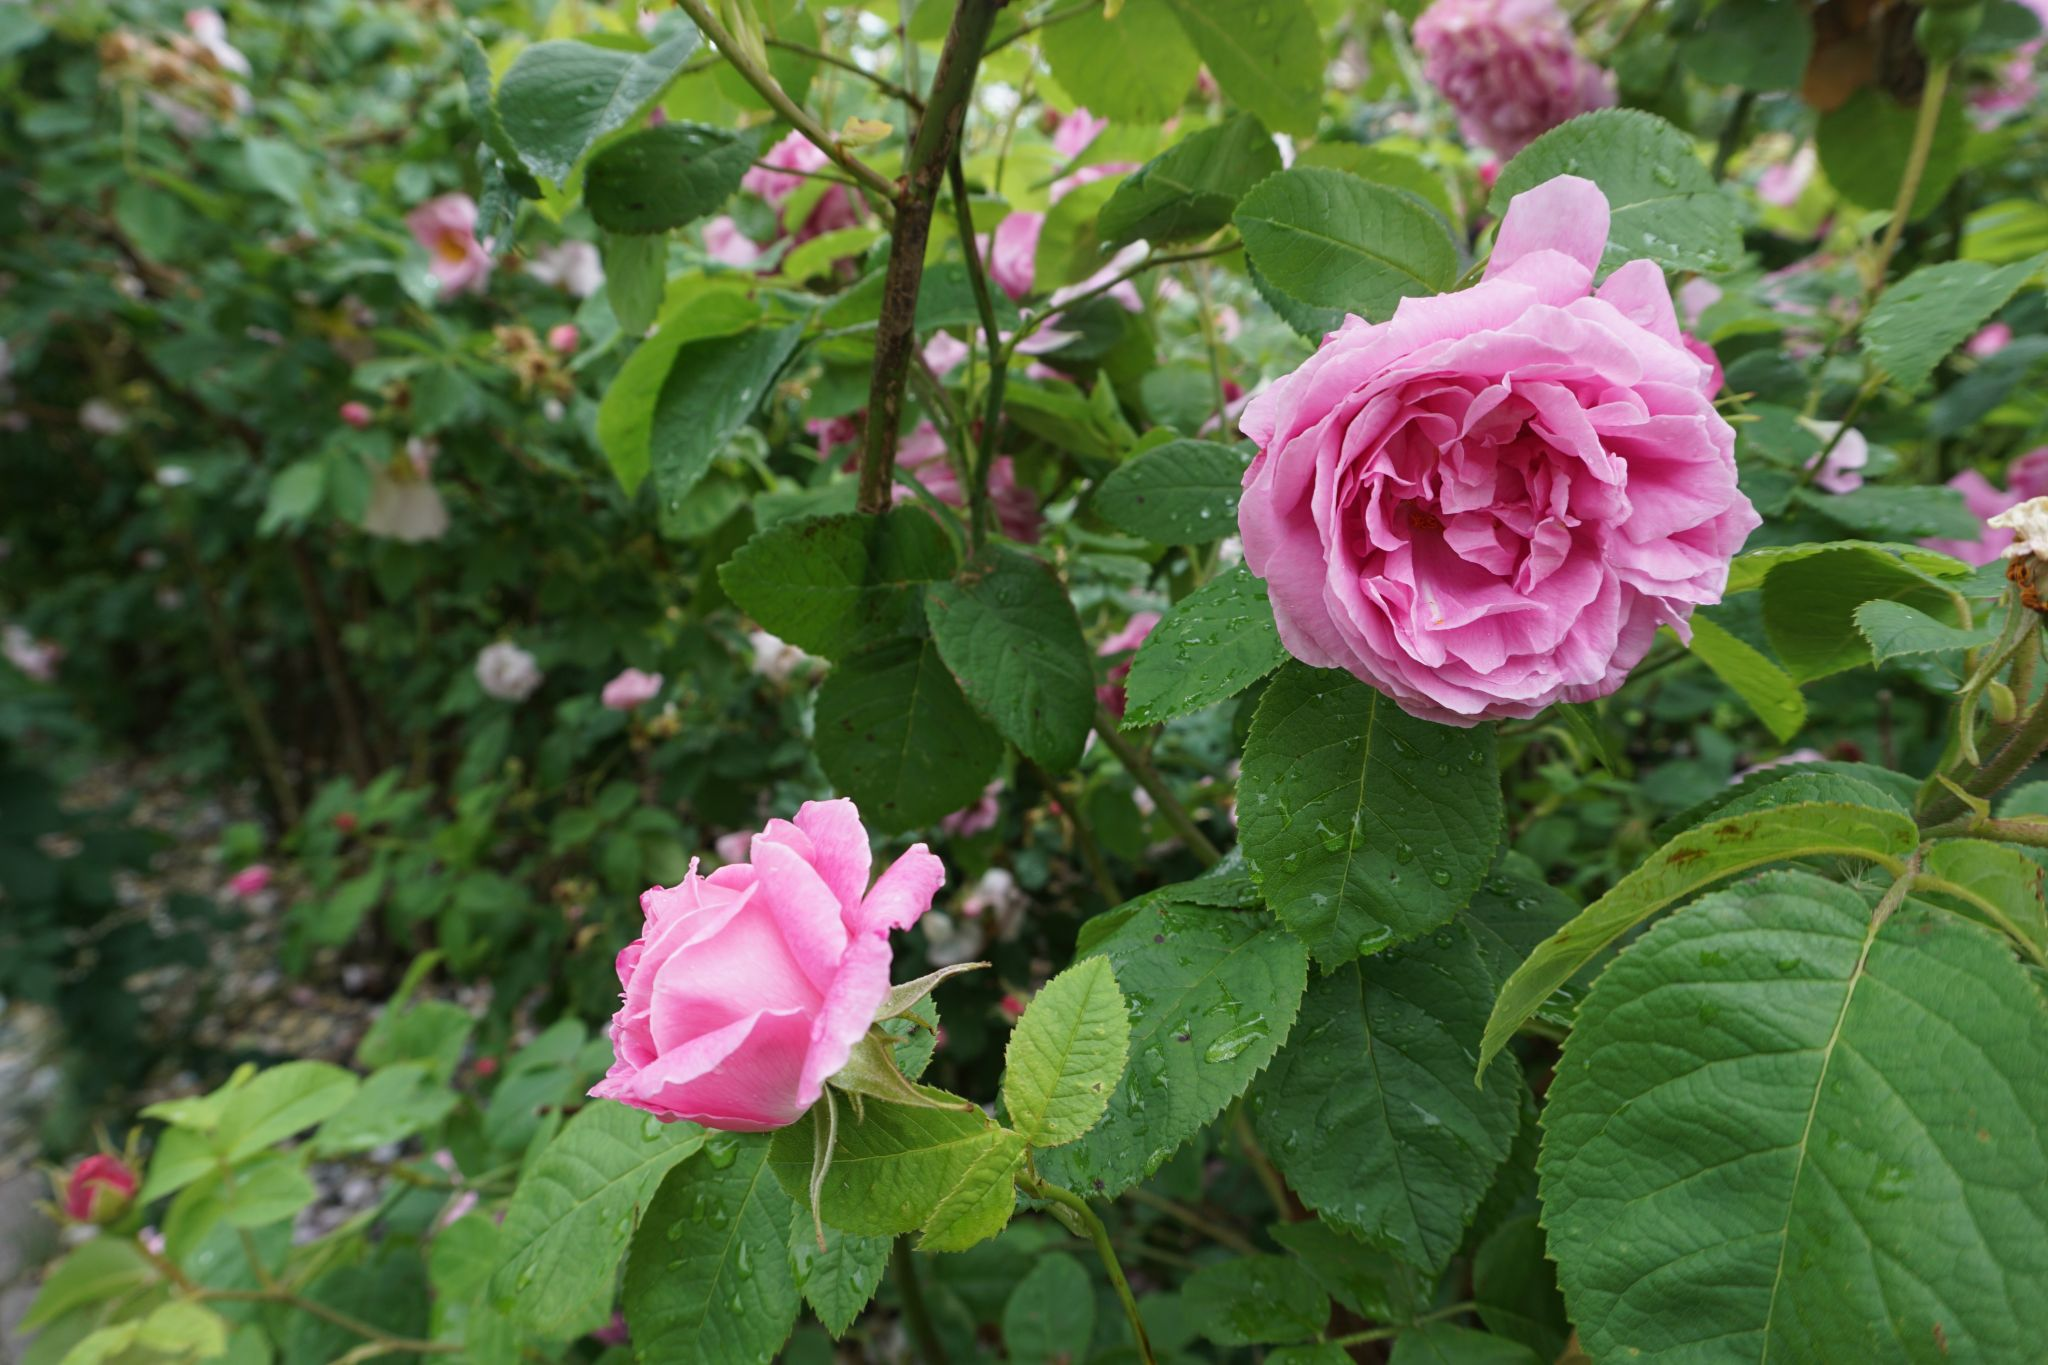 How to visit the Rose Garden in Meilahti in Helsinki